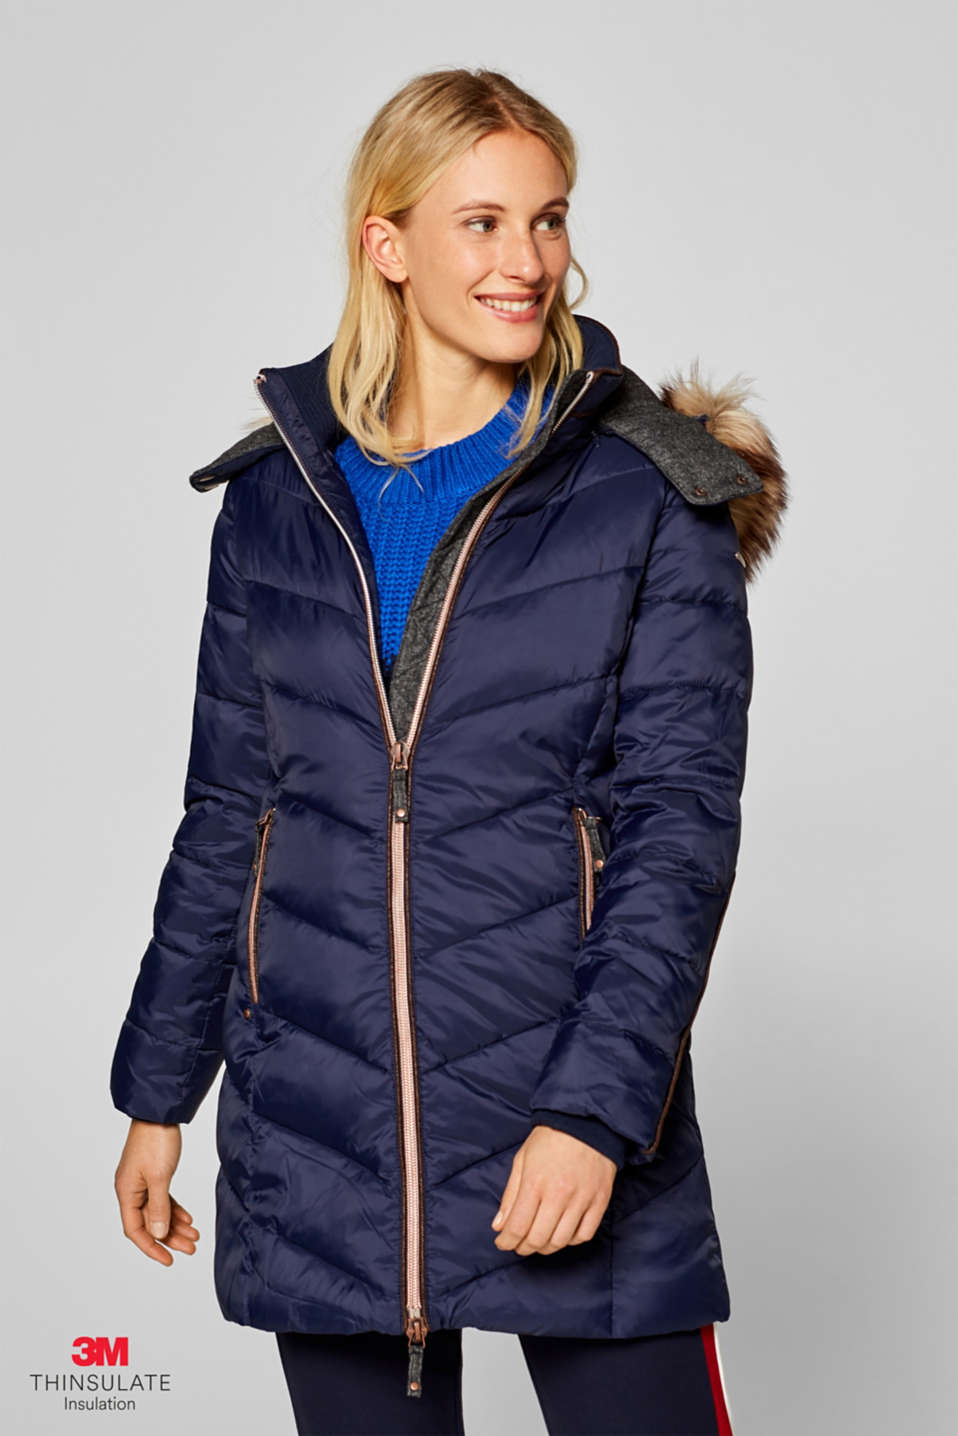 Esprit - Manteau matelassé au rembourrage 3M® Thinsulate